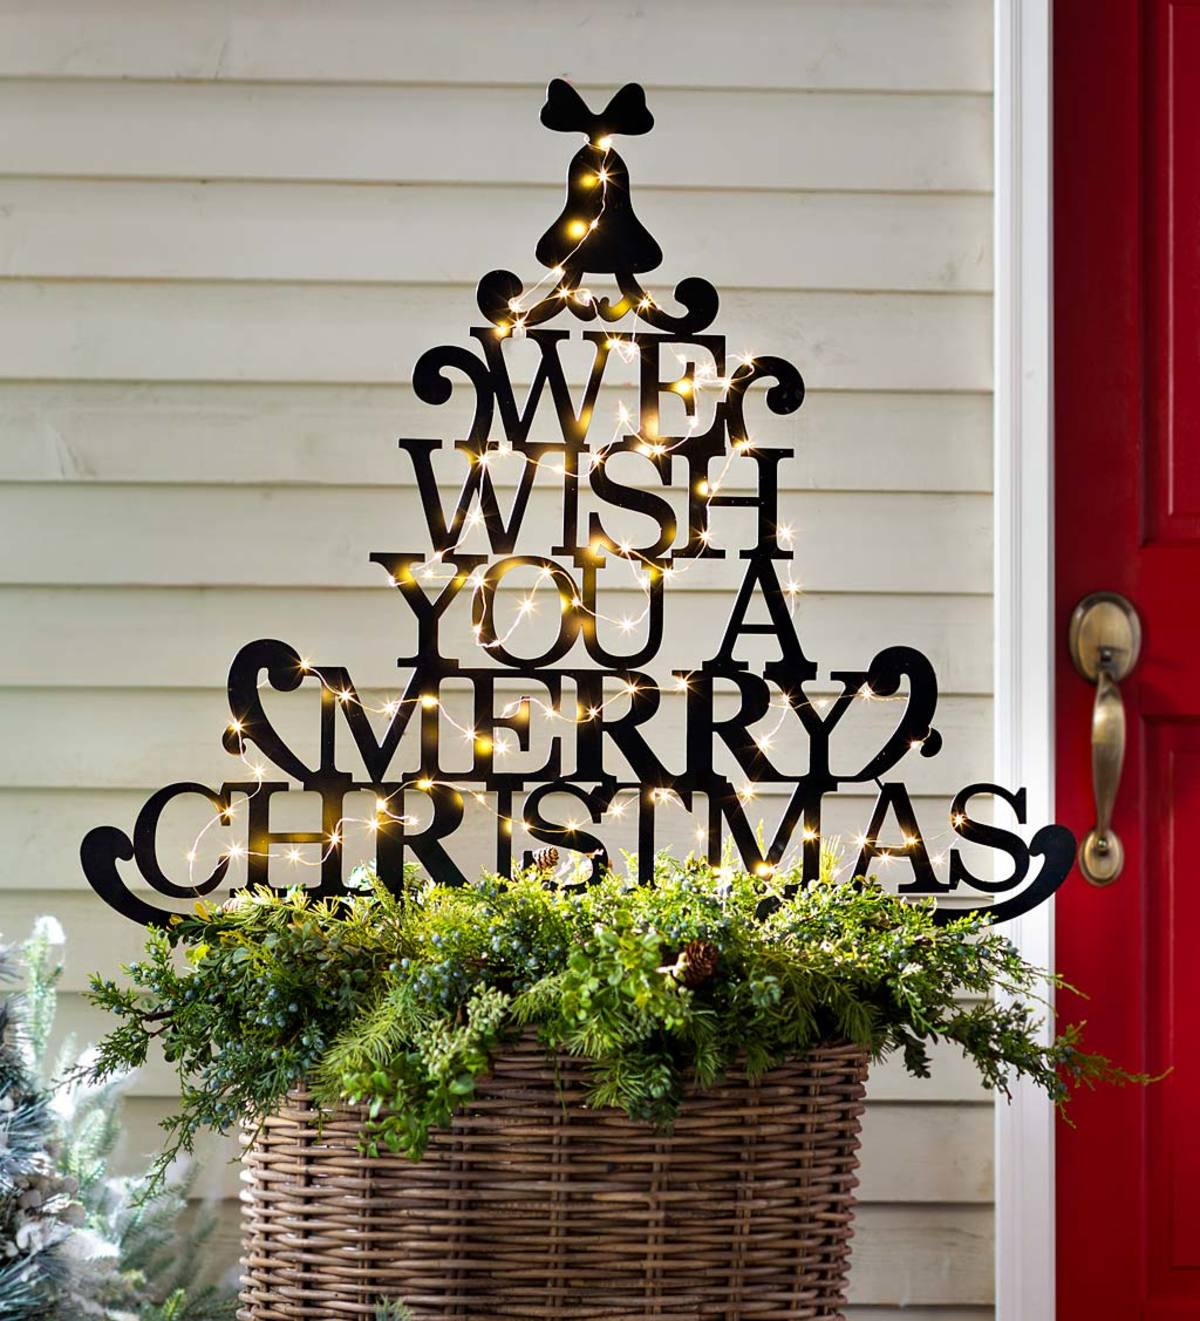 Merry Christmas Wishes Tree Metal Garden Stake Plowhearth